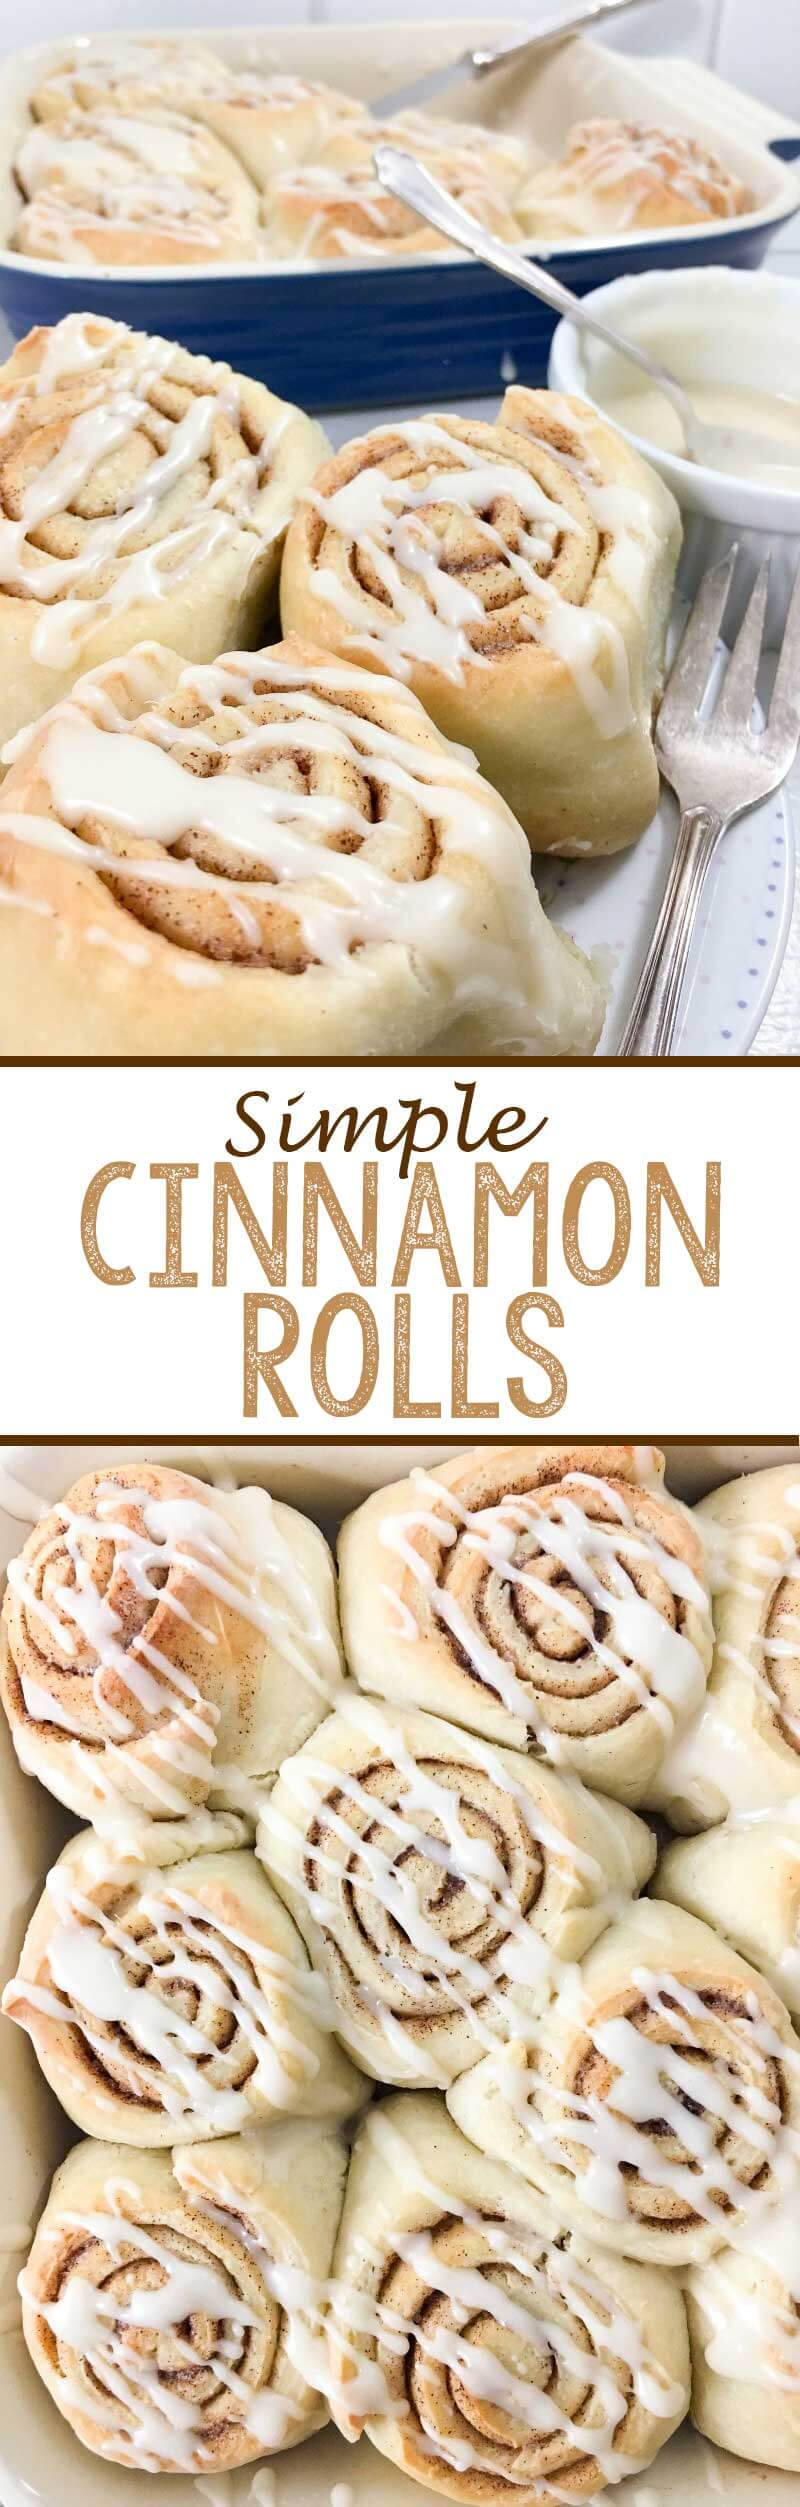 Simple Cinnamon Roll recipe with only a few ingredients!